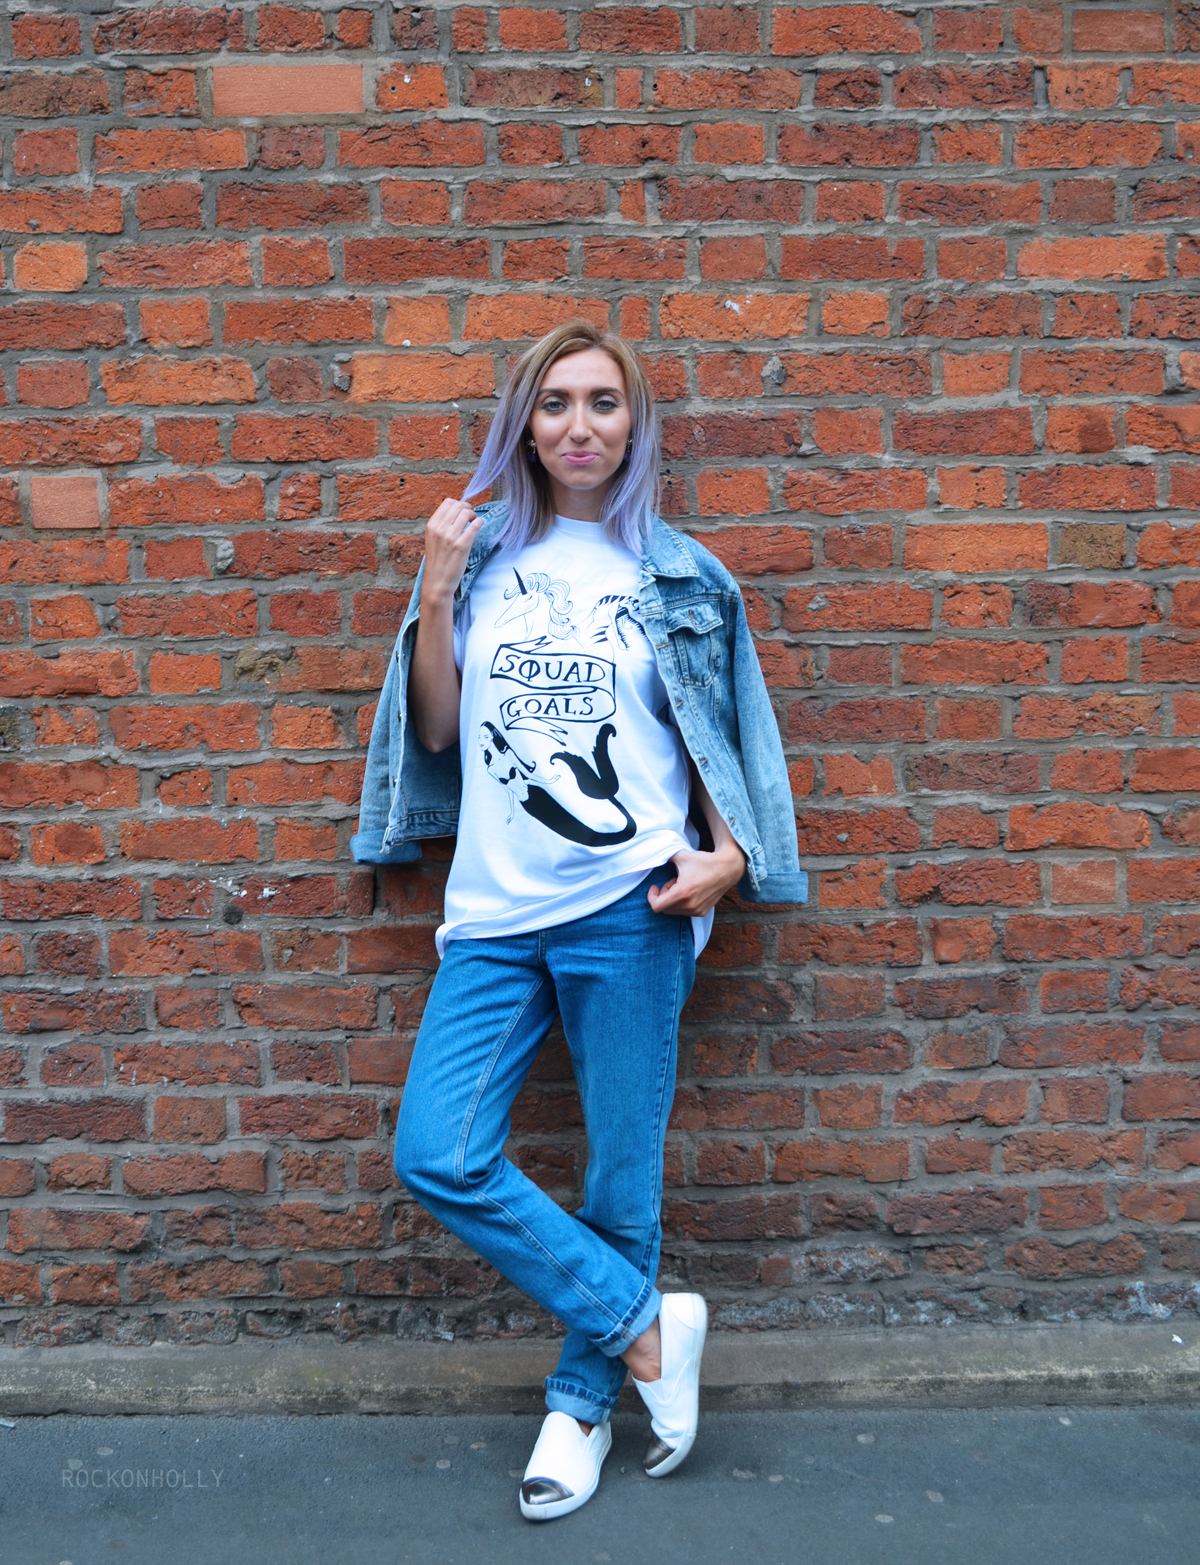 Squad Goals T-shirt from Rock On Ruby